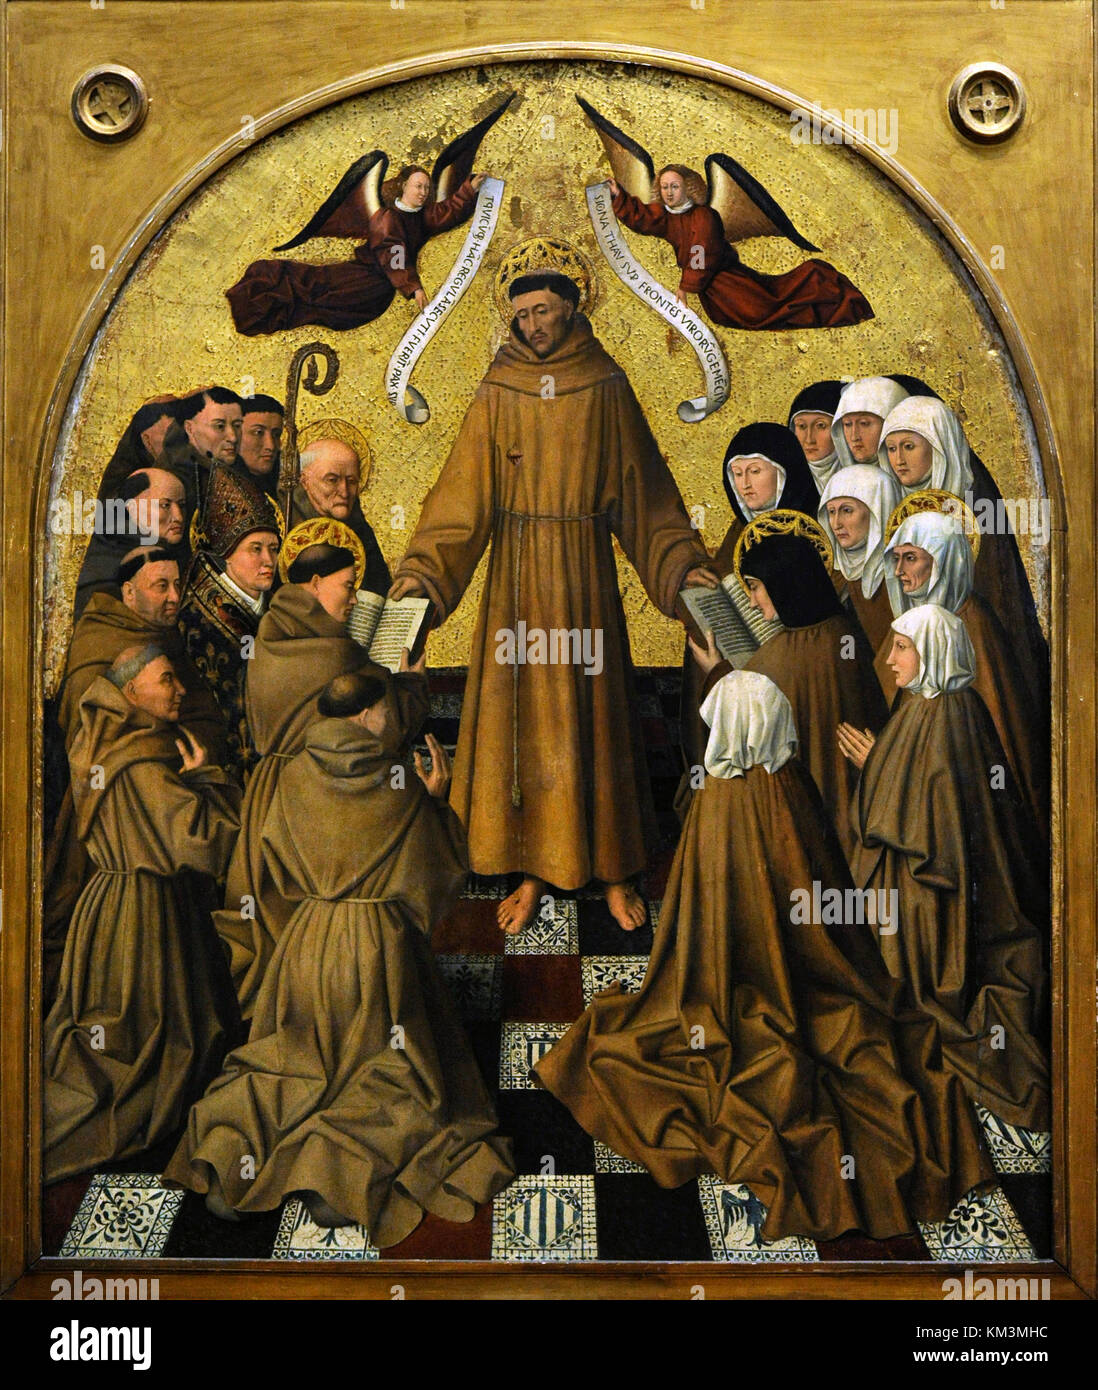 Saint Francis of Assisi (Giovanni di Pietro Bernardone) (1182-1226). Founder of the Franciscan Order. Saint Francis - Stock Image